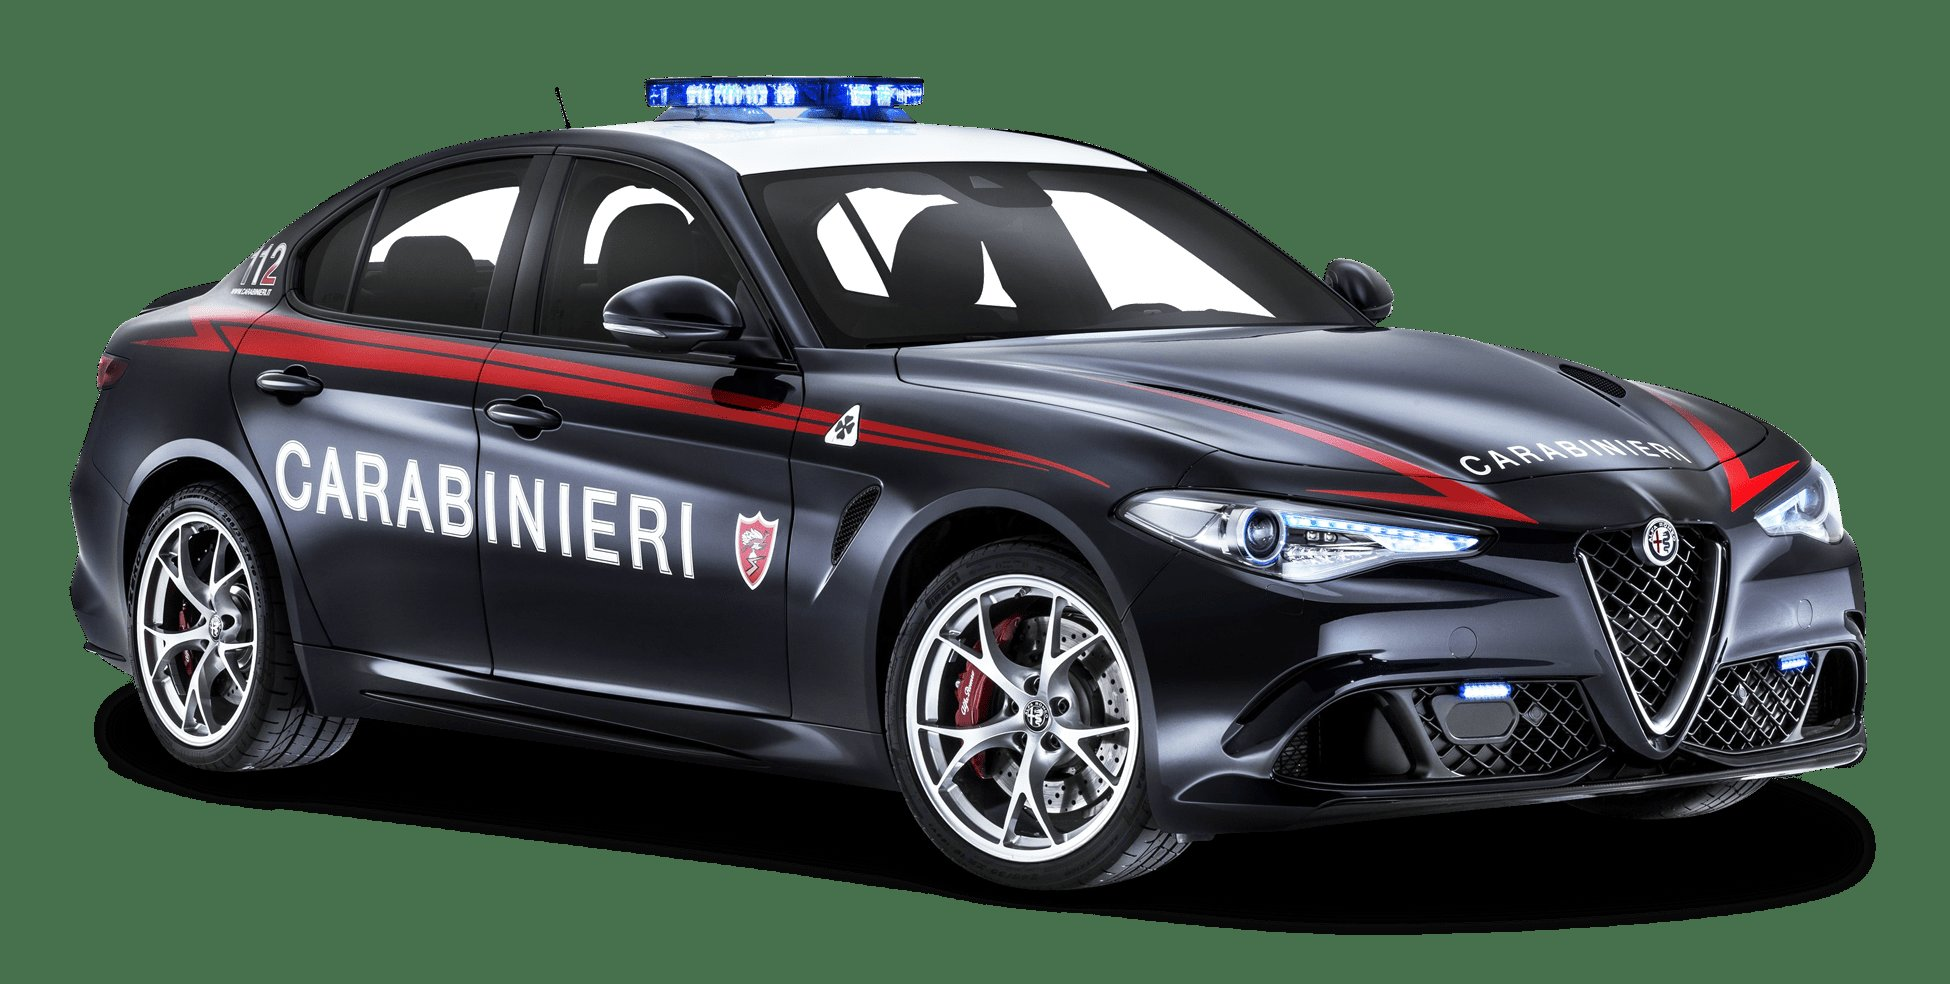 Latest Alfa Romeo Police Car Png Image Pngpix Free Download